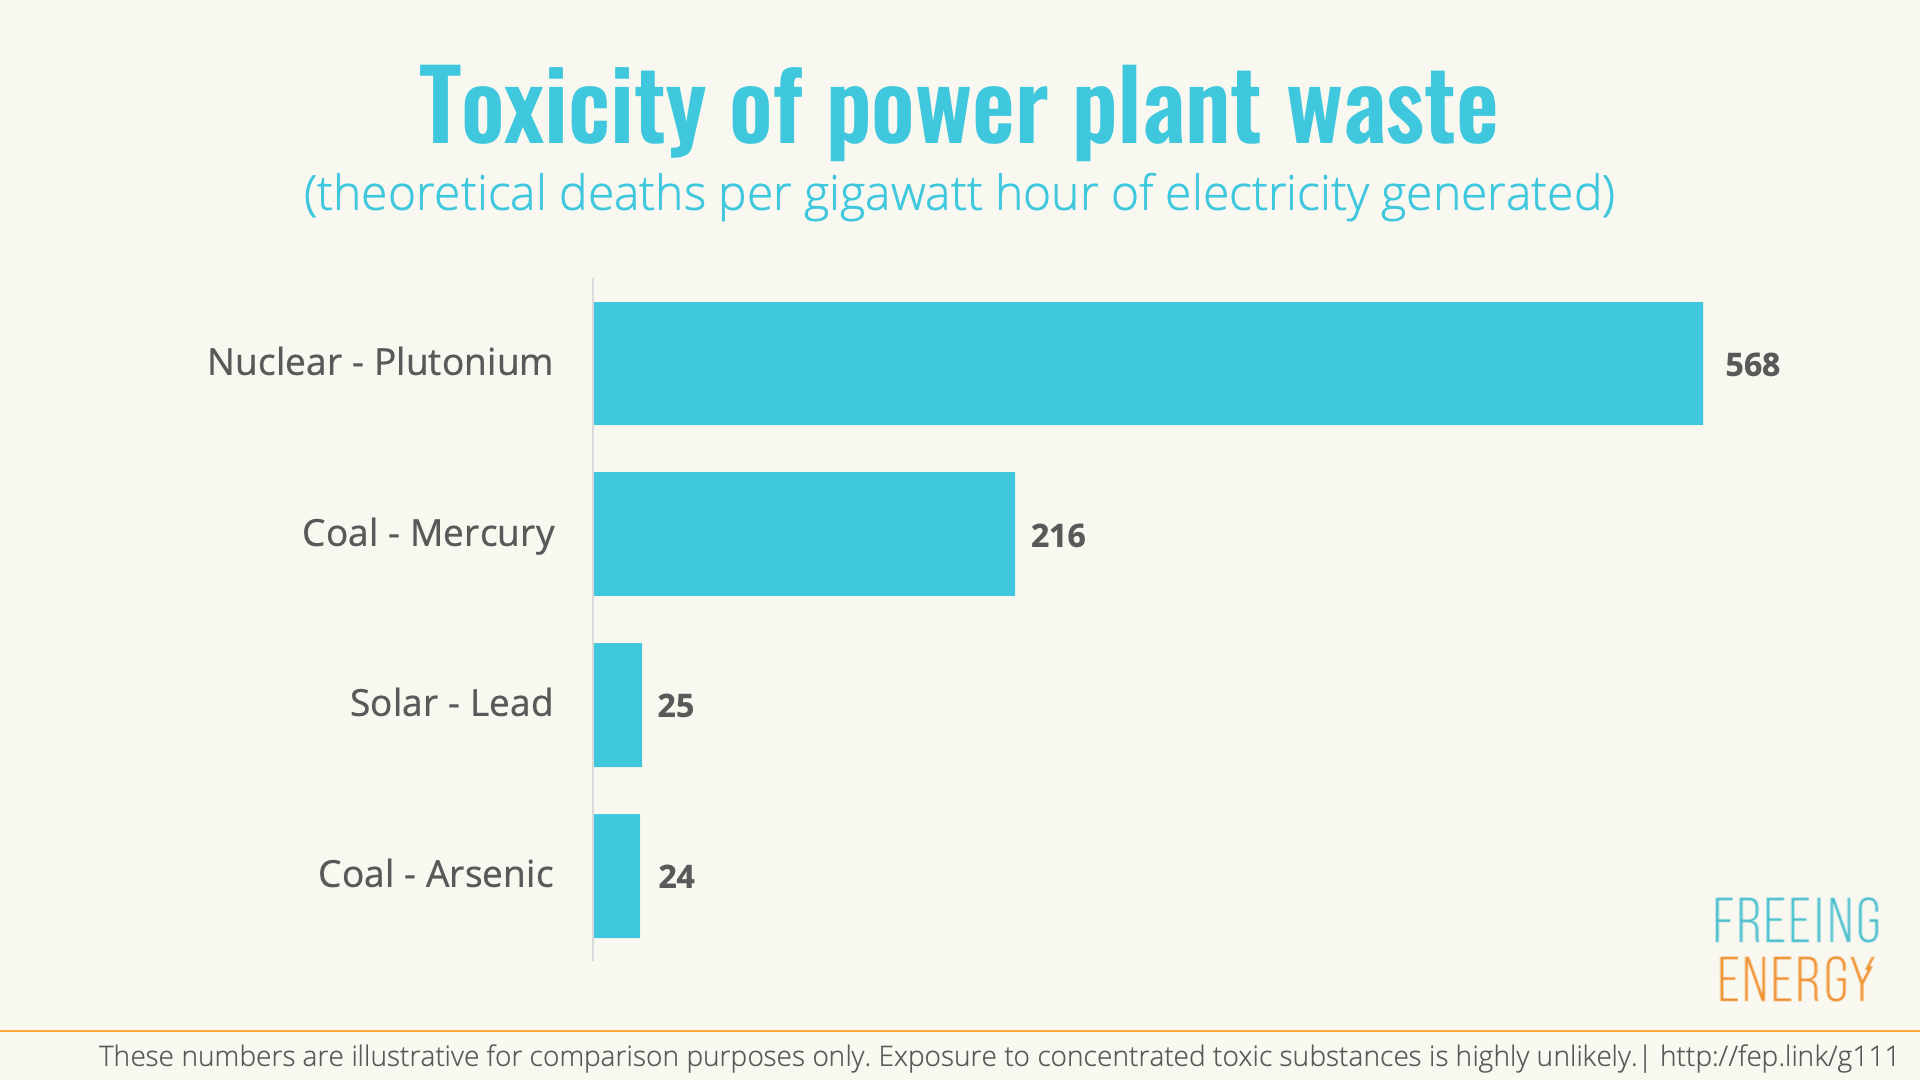 Solar emits far less toxic waste than nuclear and coal